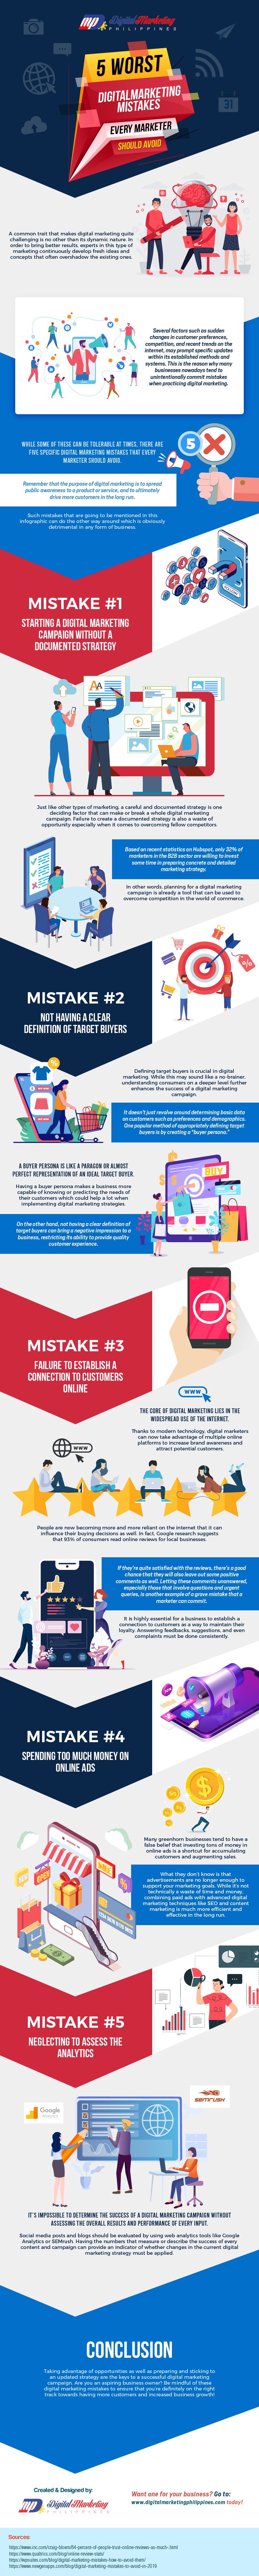 5 Worst Digital Marketing Mistakes Every Marketer Should Avoid